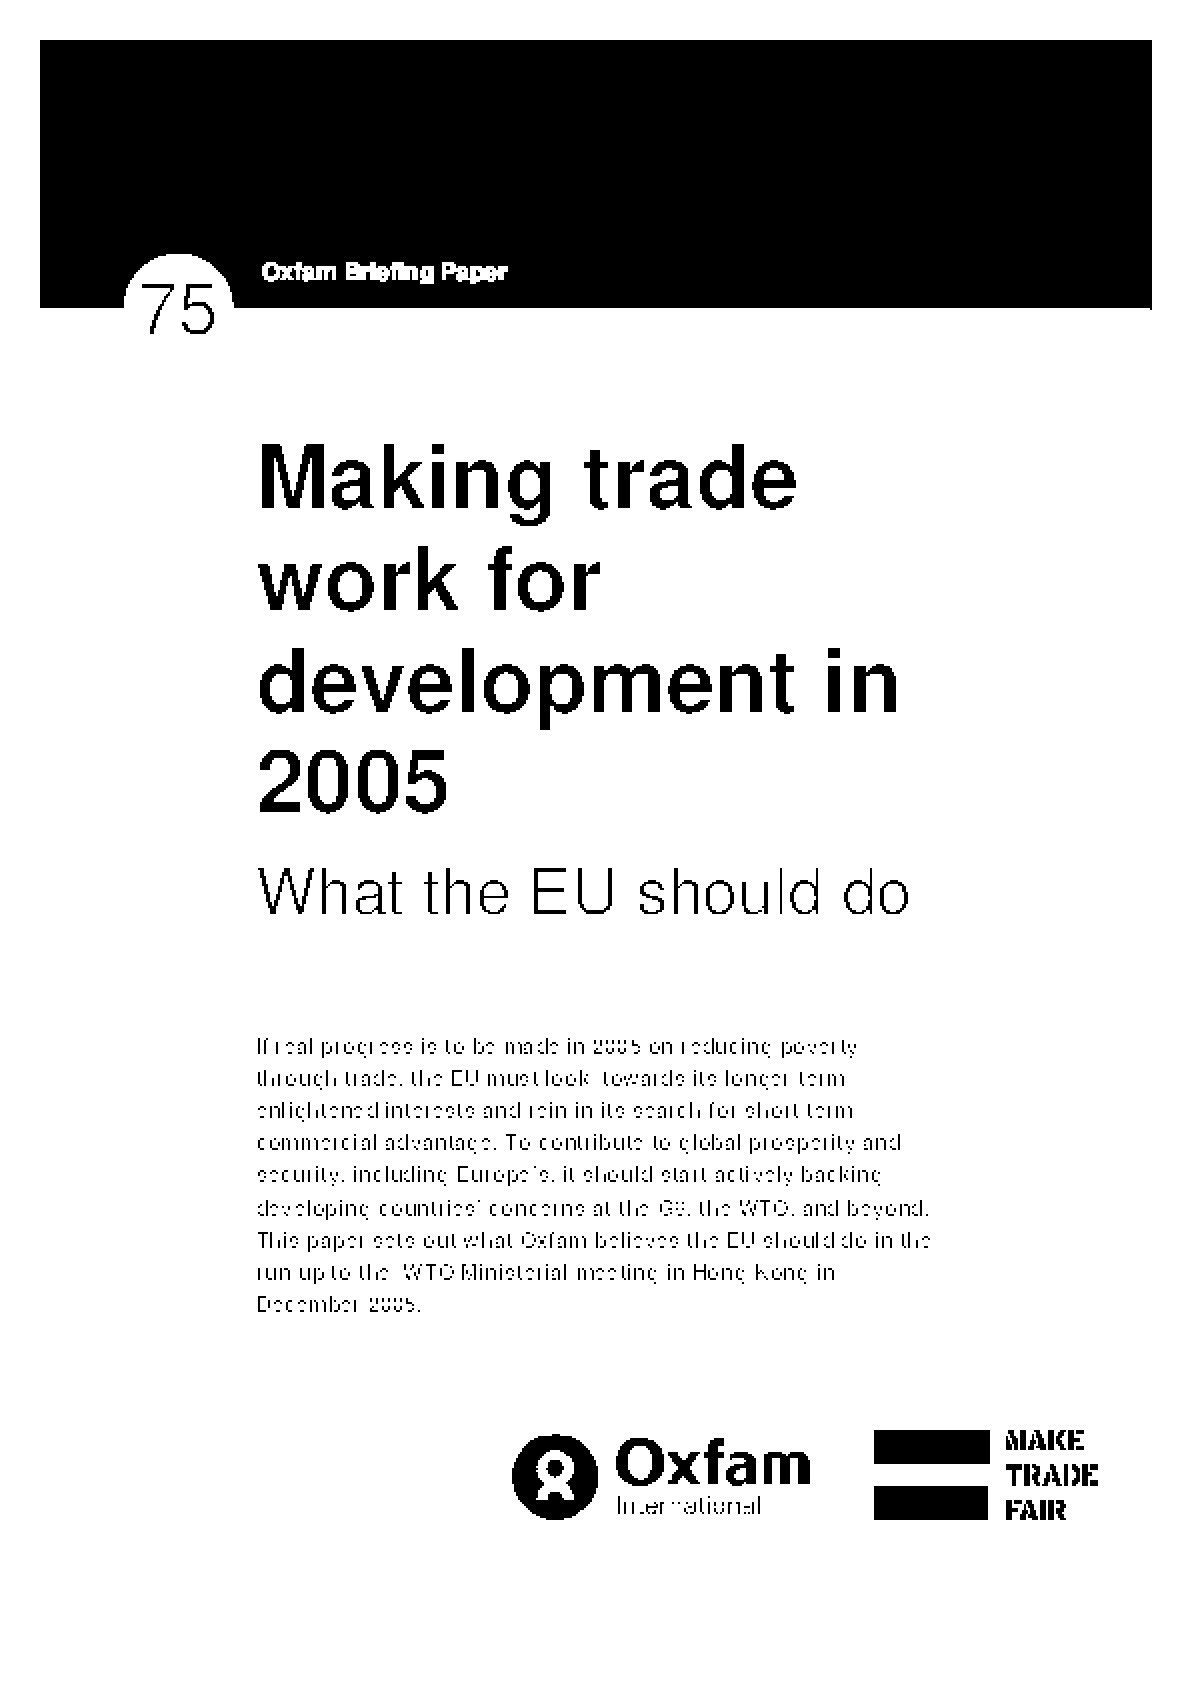 Making Trade Work for Development in 2006: What the UK Should Do